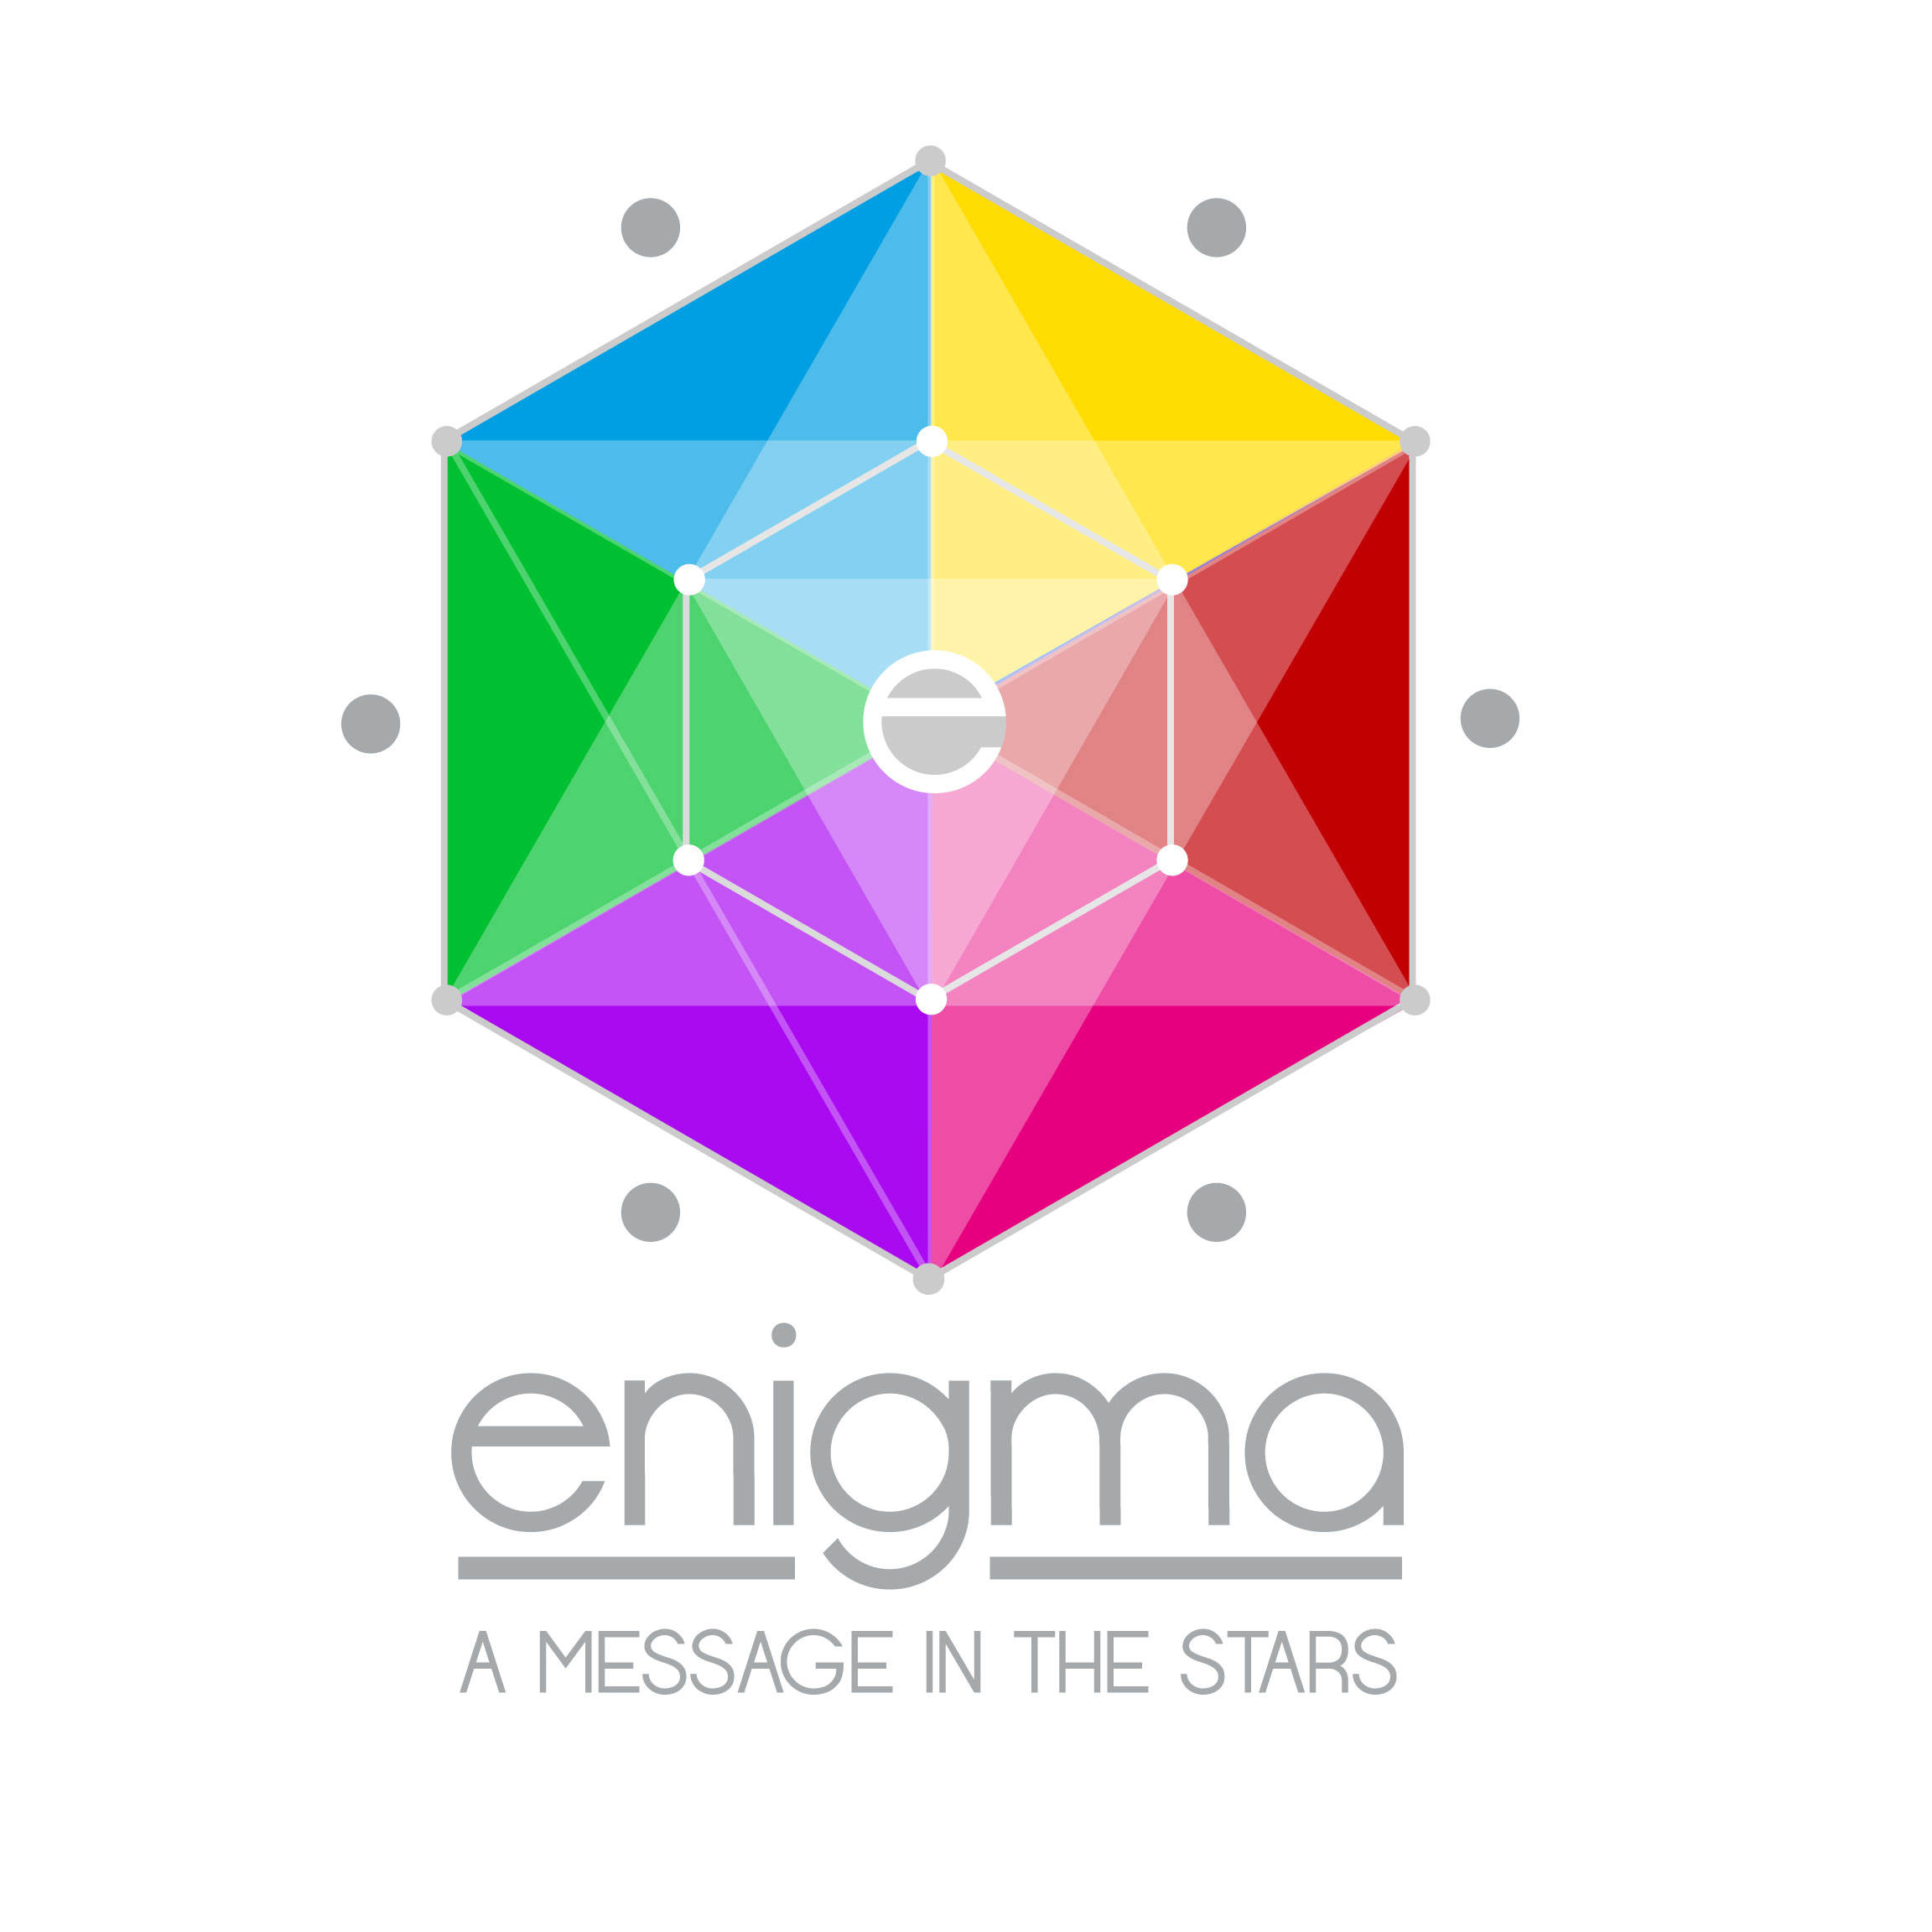 Enigma: A Message in the Stars